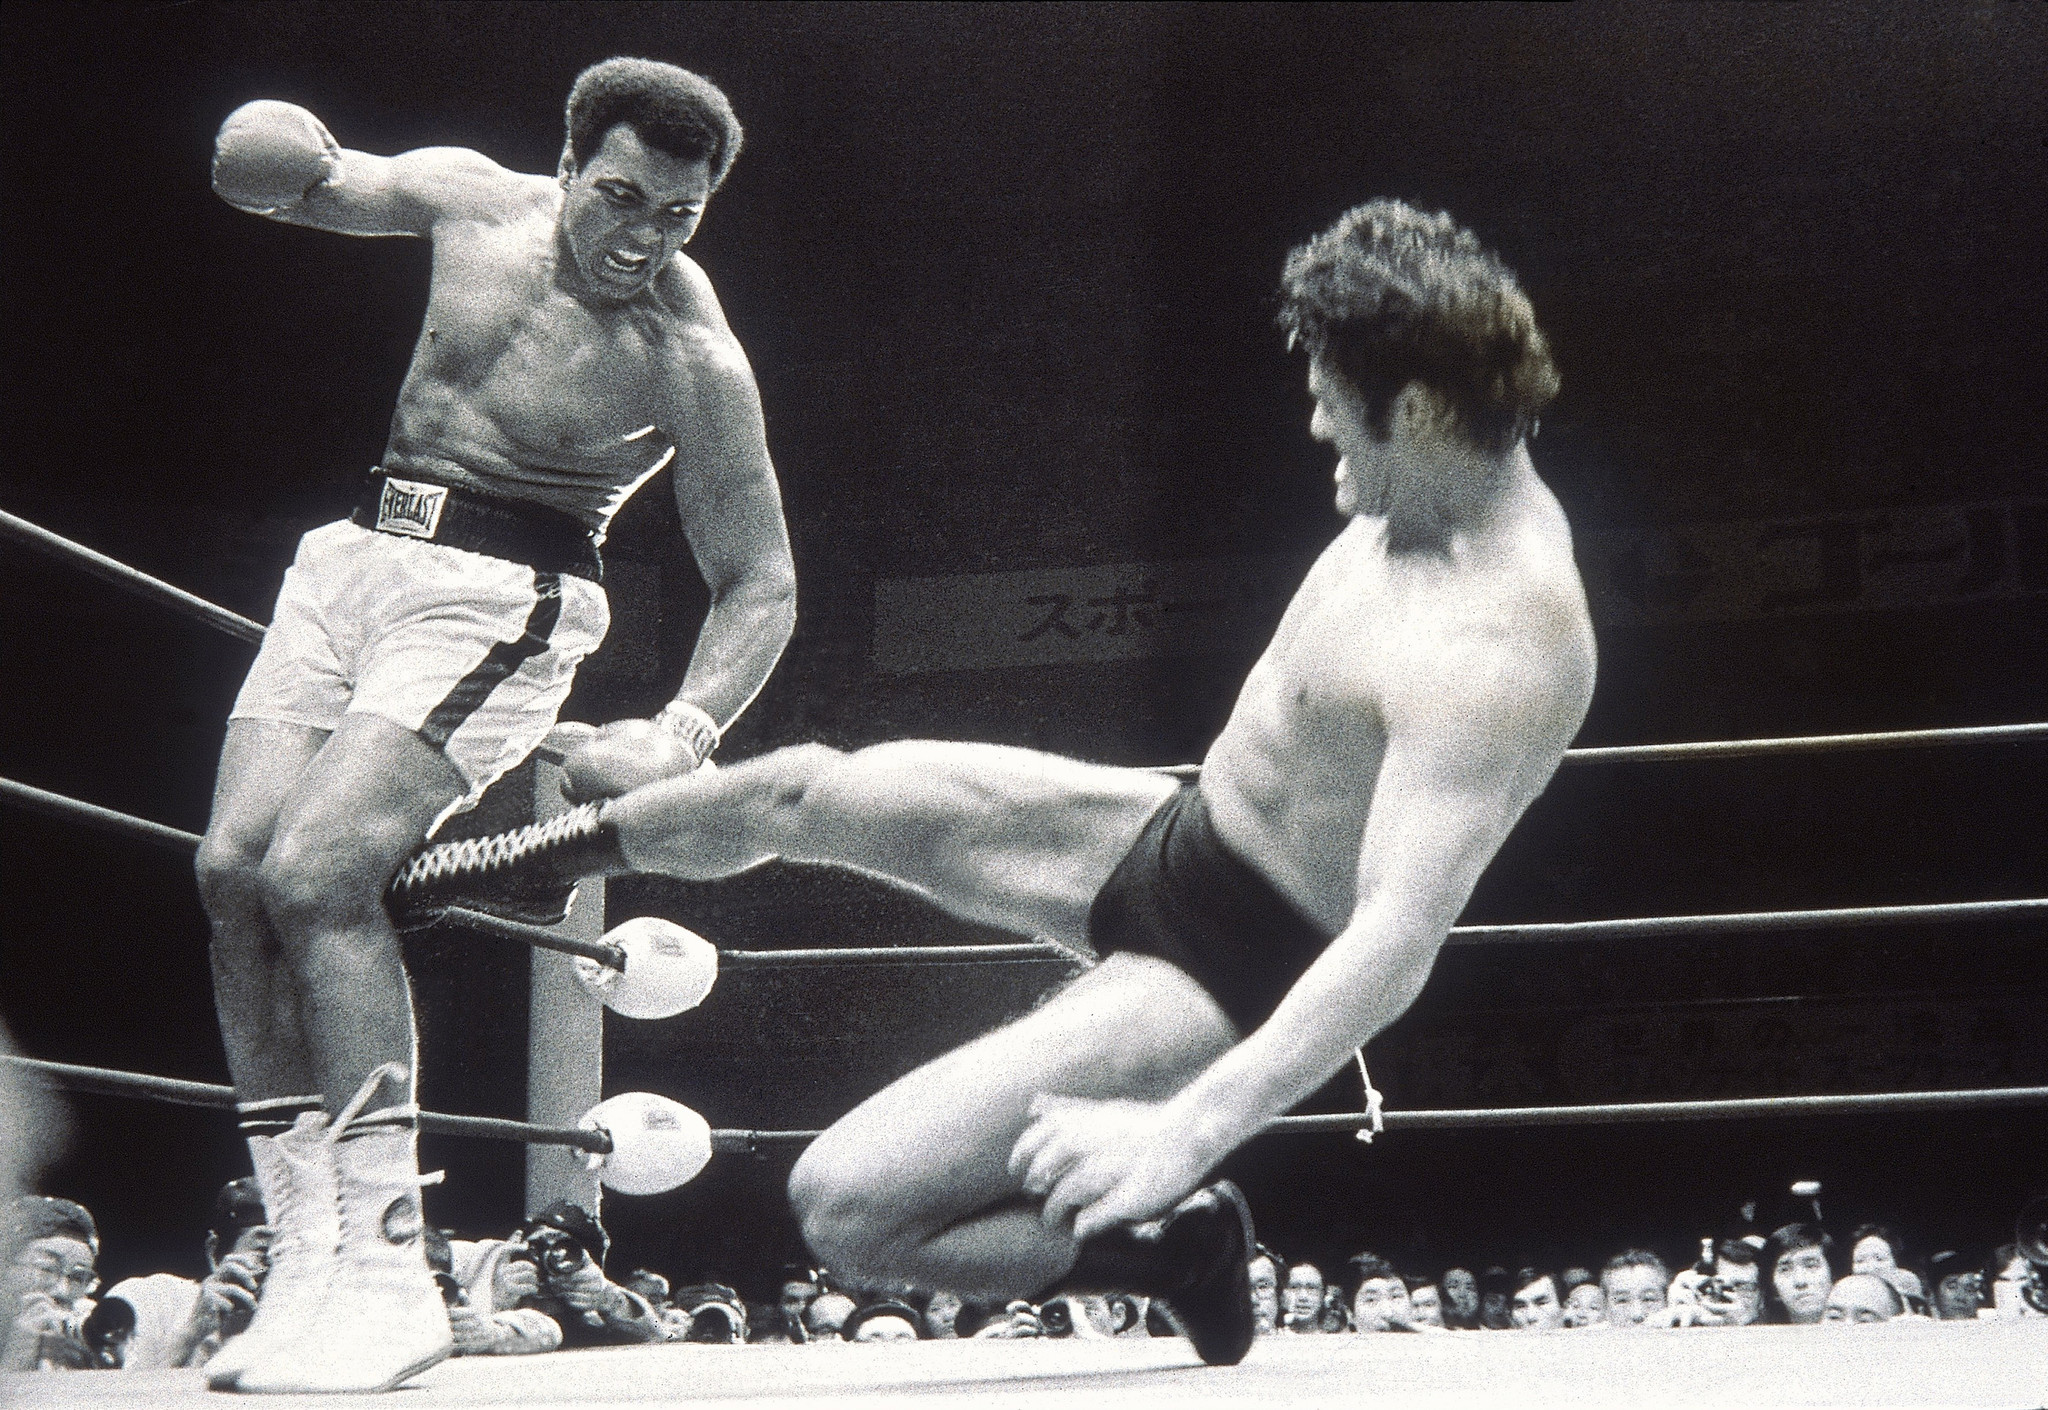 The Japanese pro wrestler who almost got Muhammad Ali's leg amputated